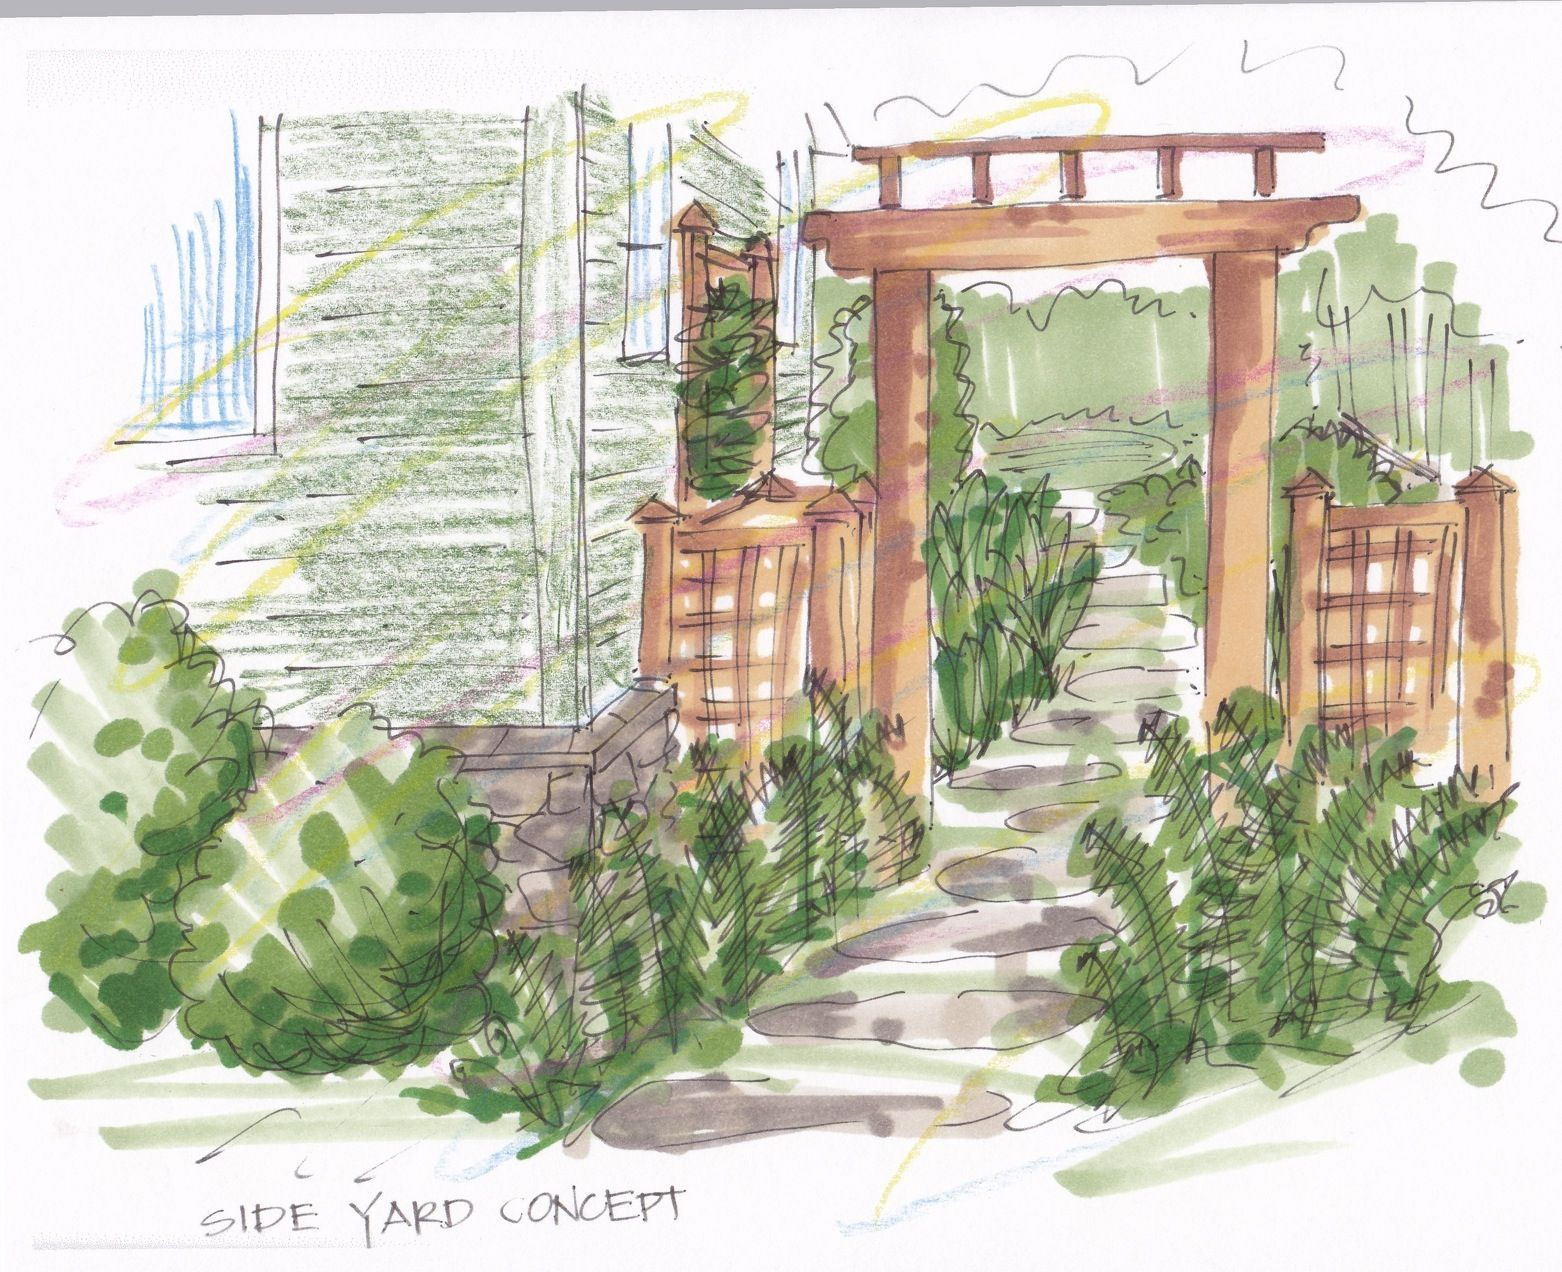 landscape design concepts from photo